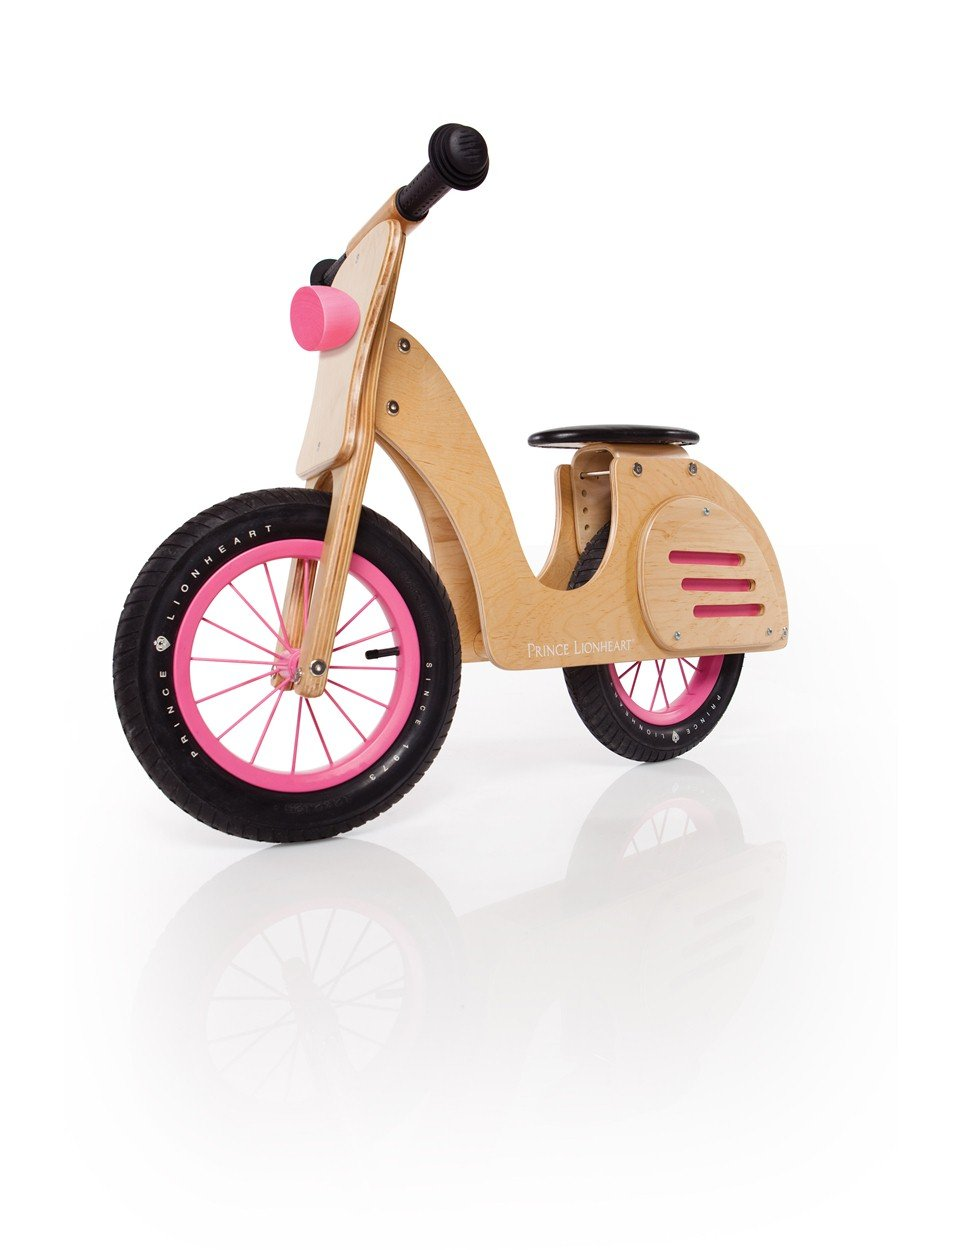 Prince Lionheart 7602 Whirl Balance Scooter (Natural/Pink)